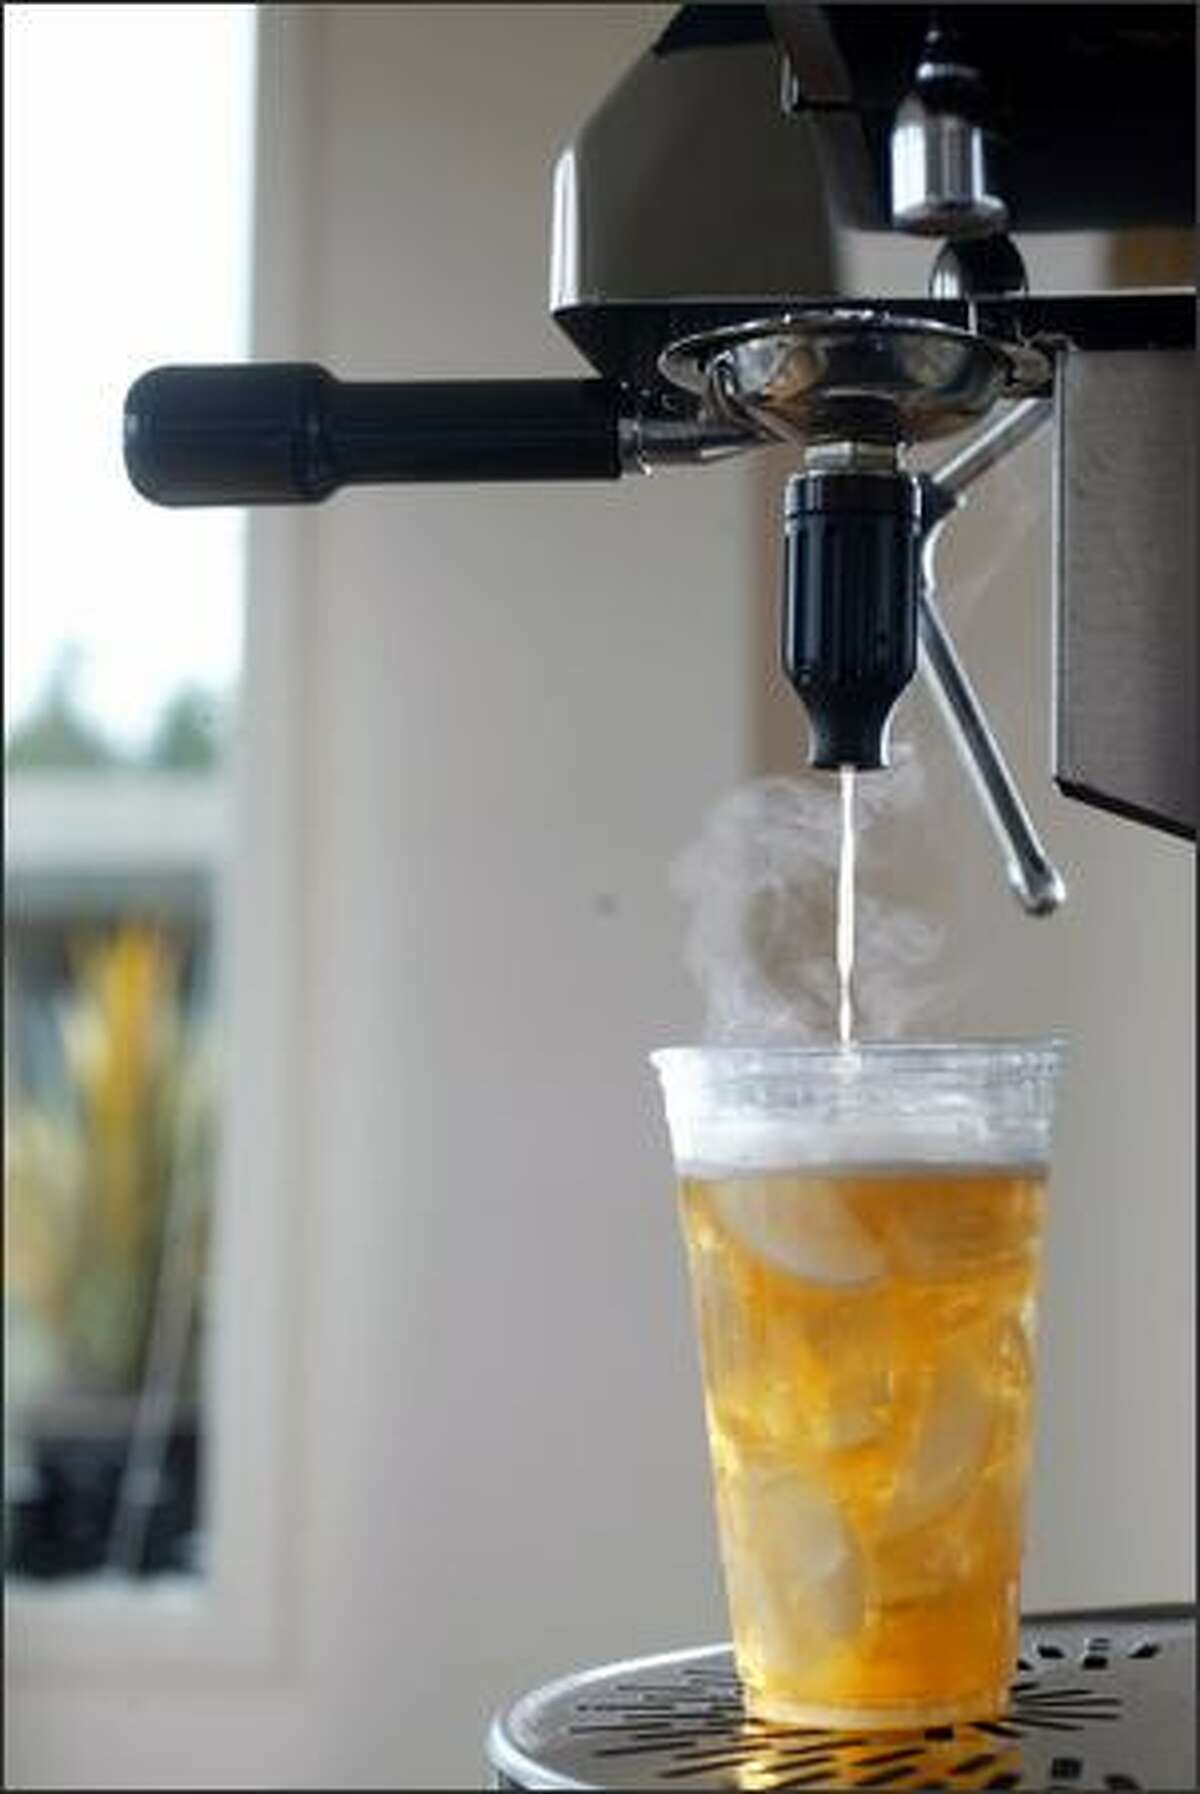 4/4/04 affinitea:: Michael DiMartino developed a beverage infuser which takes large high quality tea, opens the leaf, and extracts the tea through the use of a pressurized chamber. This machine can make tea in 30 - 40 seconds and can give a customer a higher quality product.